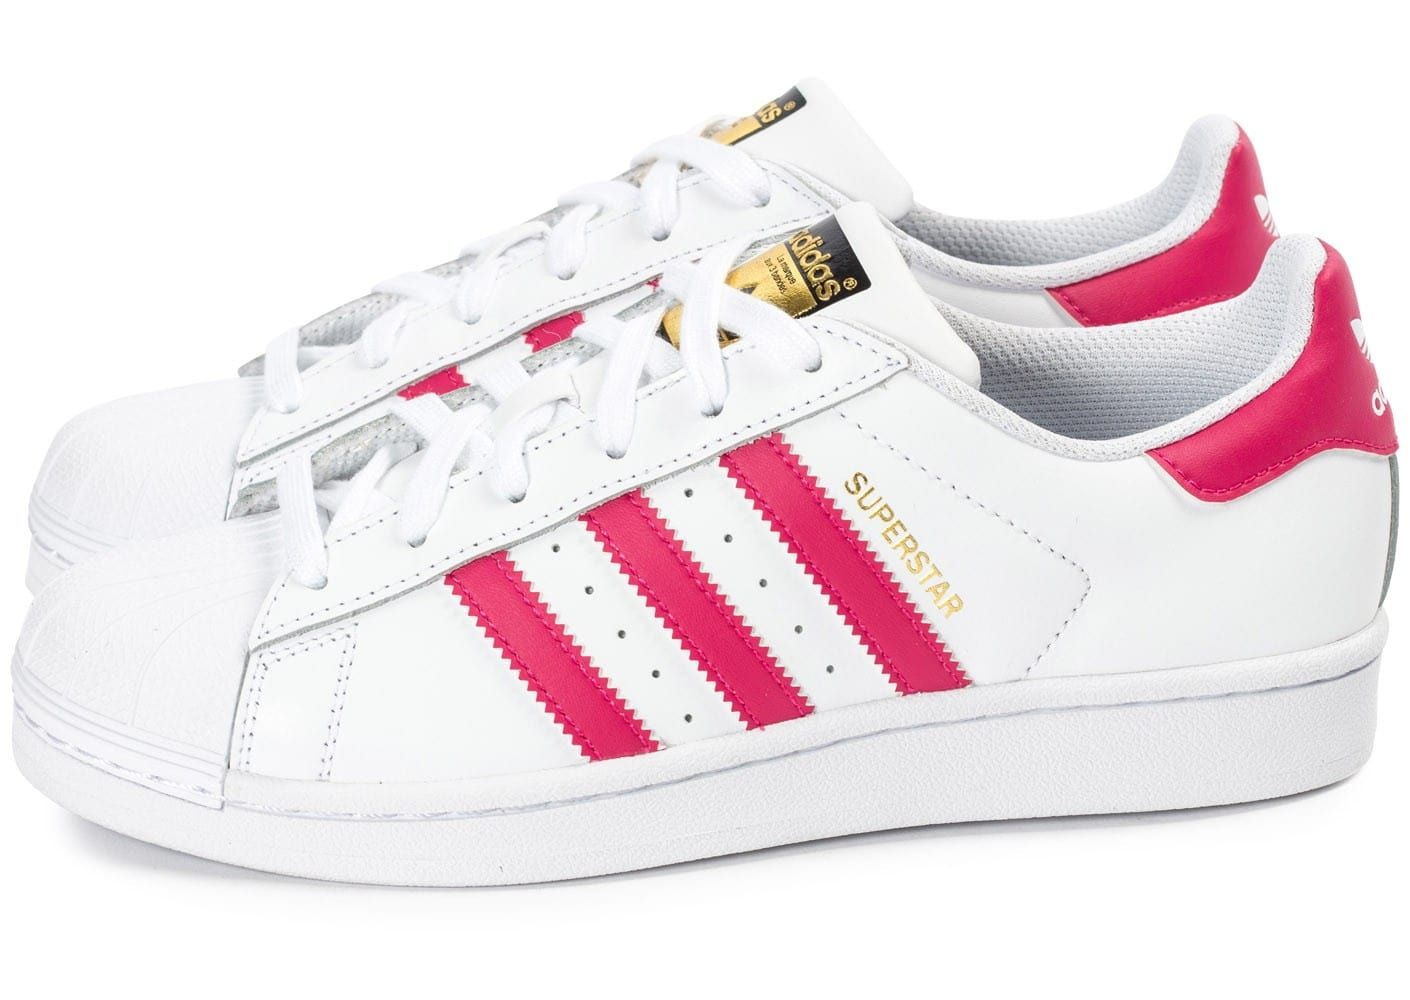 new arrival 166ed 9b104 Chaussures adidas Superstar Foundation Junior blanche et rose vue extérieure